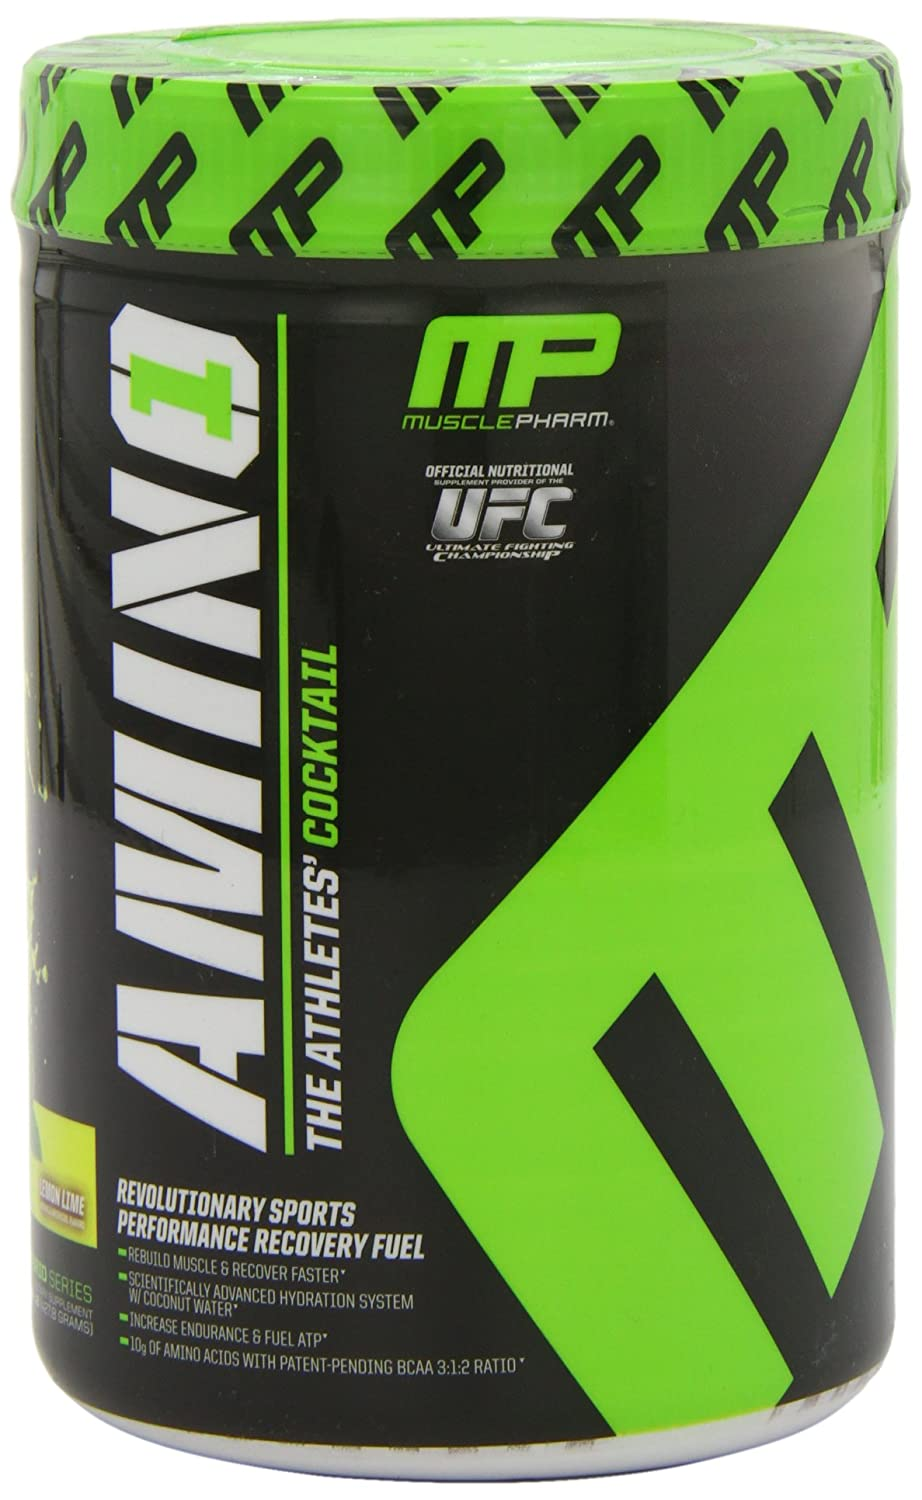 Amazon.com: MusclePharm Amino 1 Hydration & Recovery Supplement, Lemon Lime, 30 Servings: Health & Personal Care